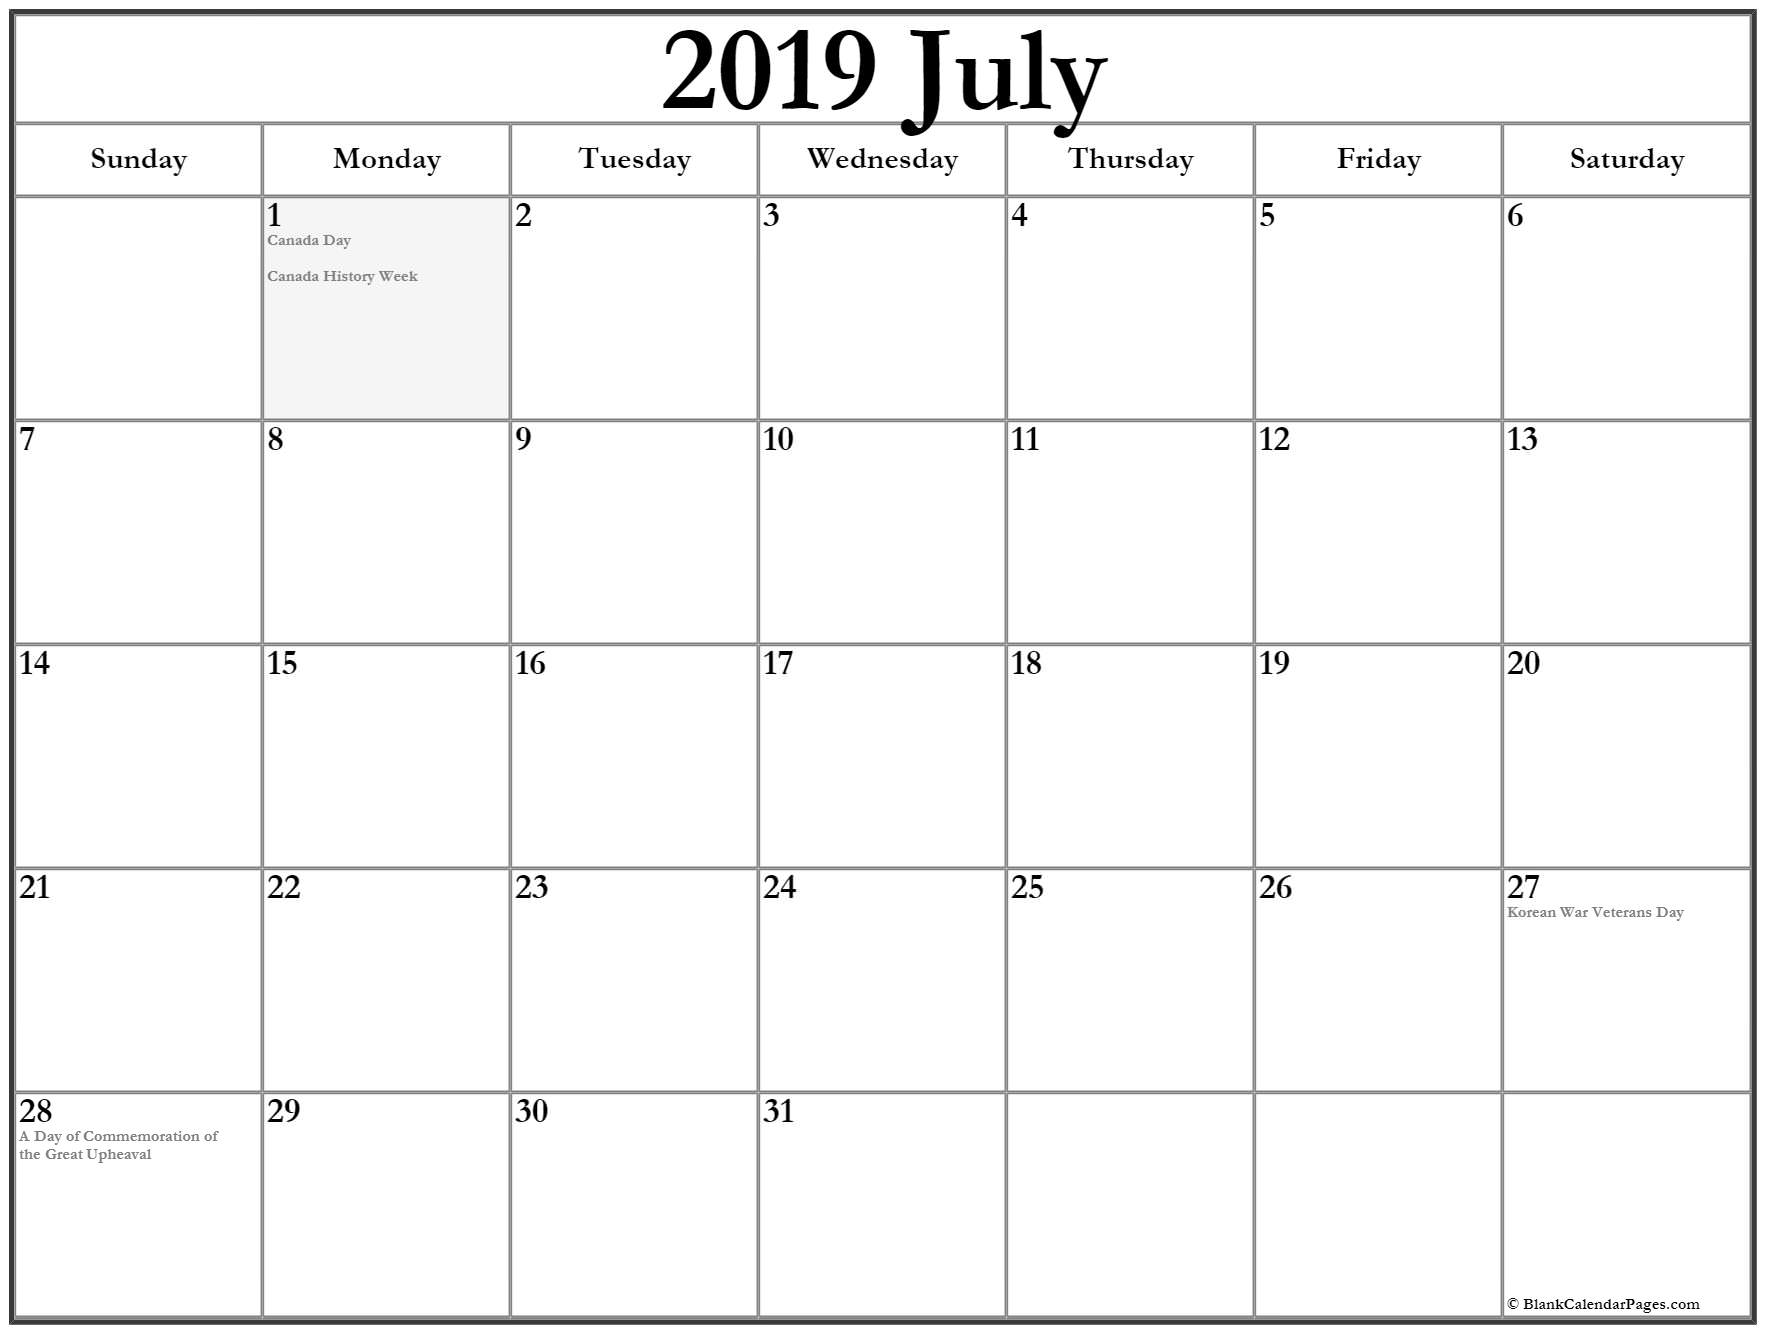 July 2019 Calendar with Holidays US, UK, Canada, India 2